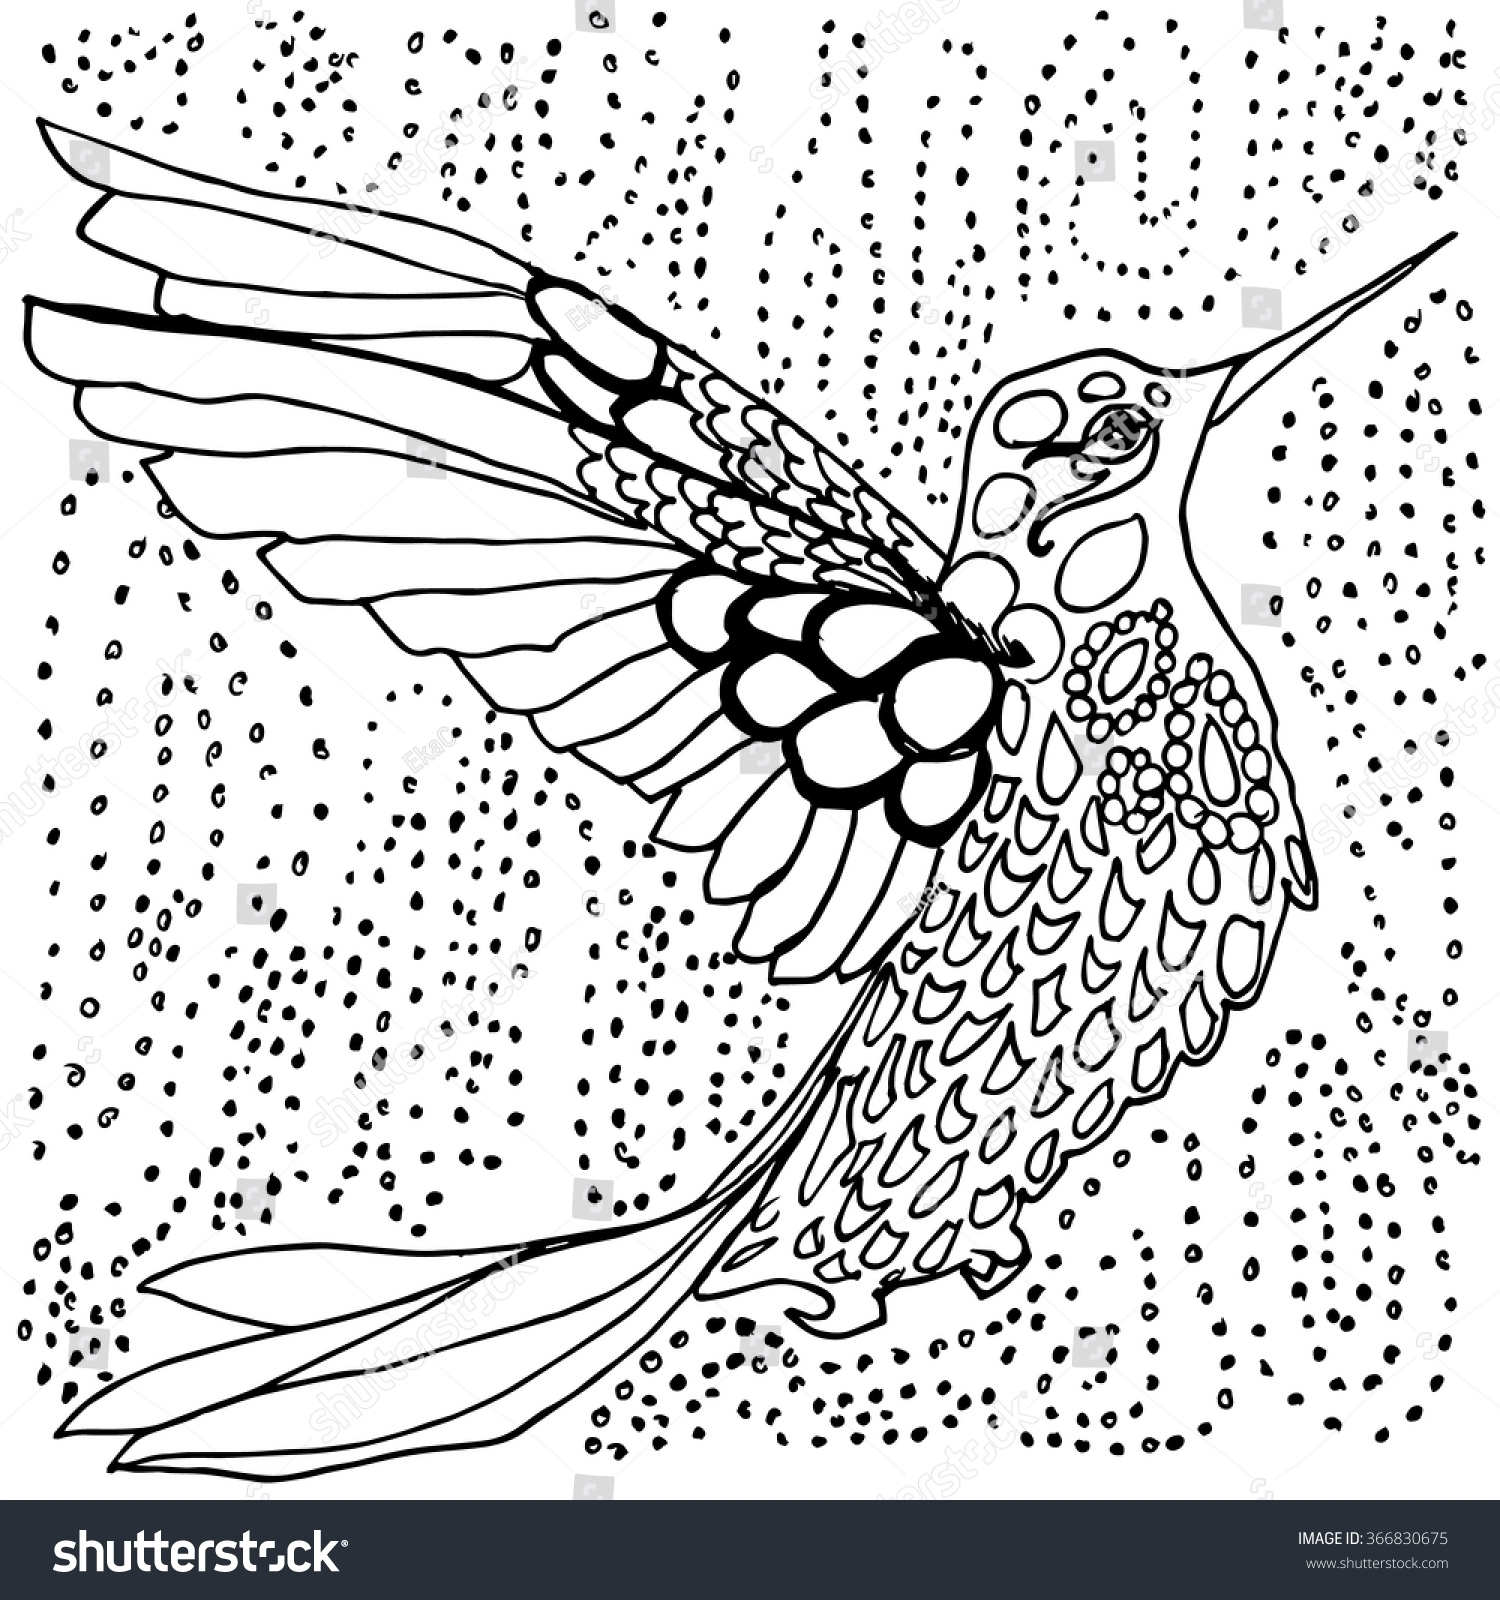 1500x1600 Hummingbird Coloring Pages For Adults Collection